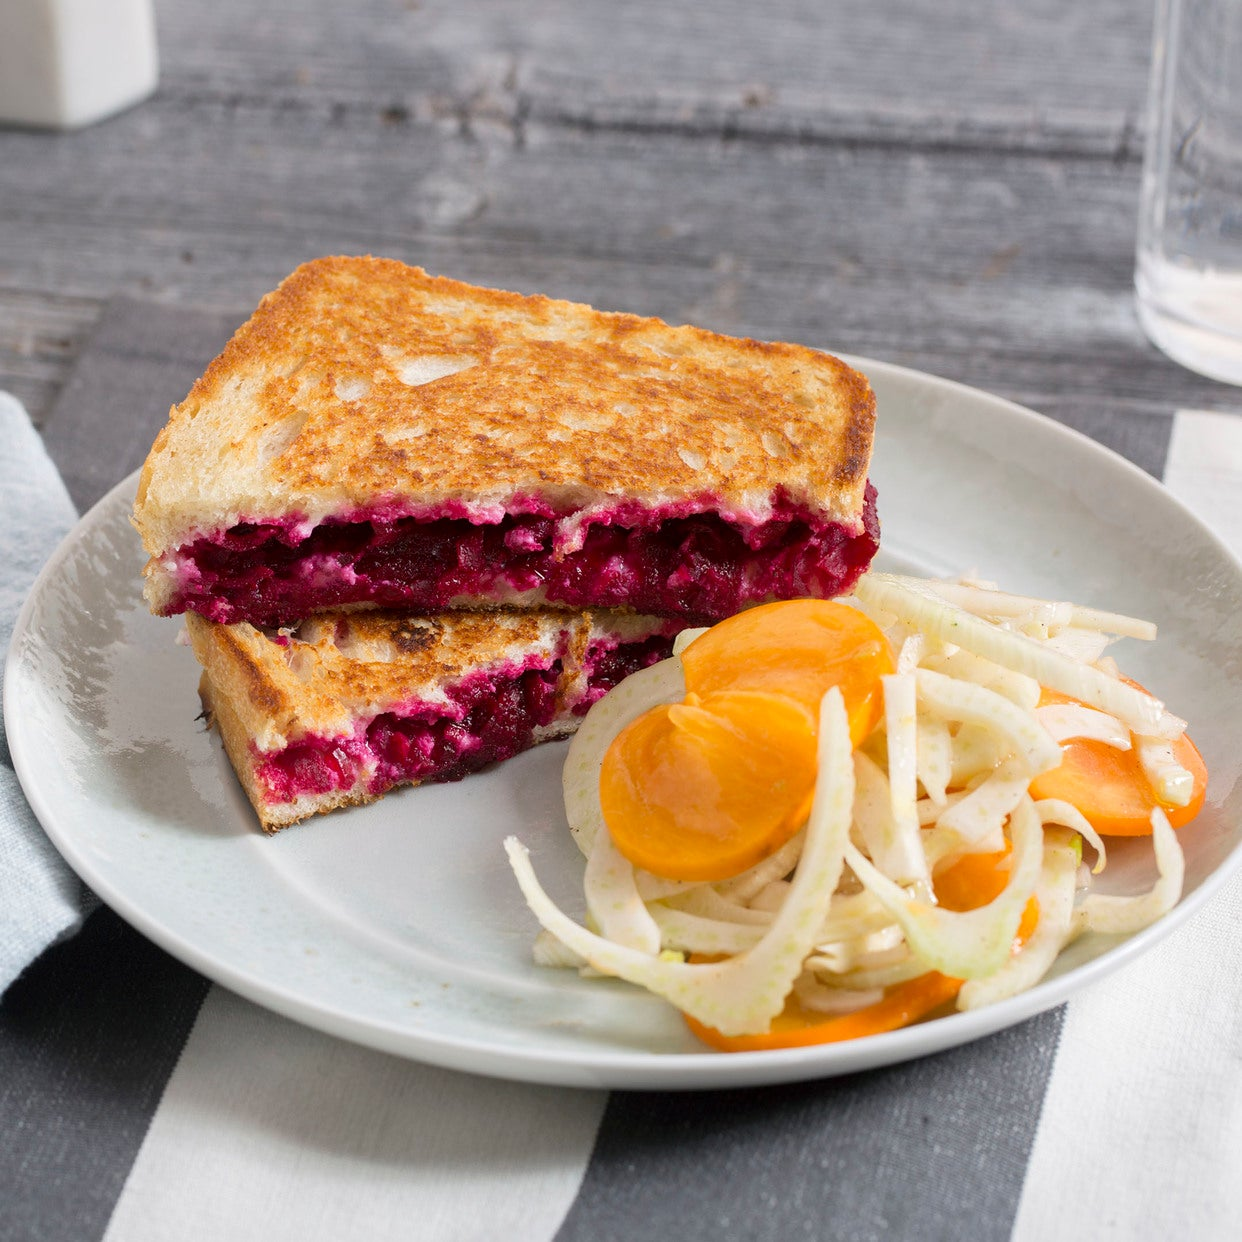 Ricotta & Beet Grilled Cheese Sandwiches with Persimmon & Marinated Fennel Salad